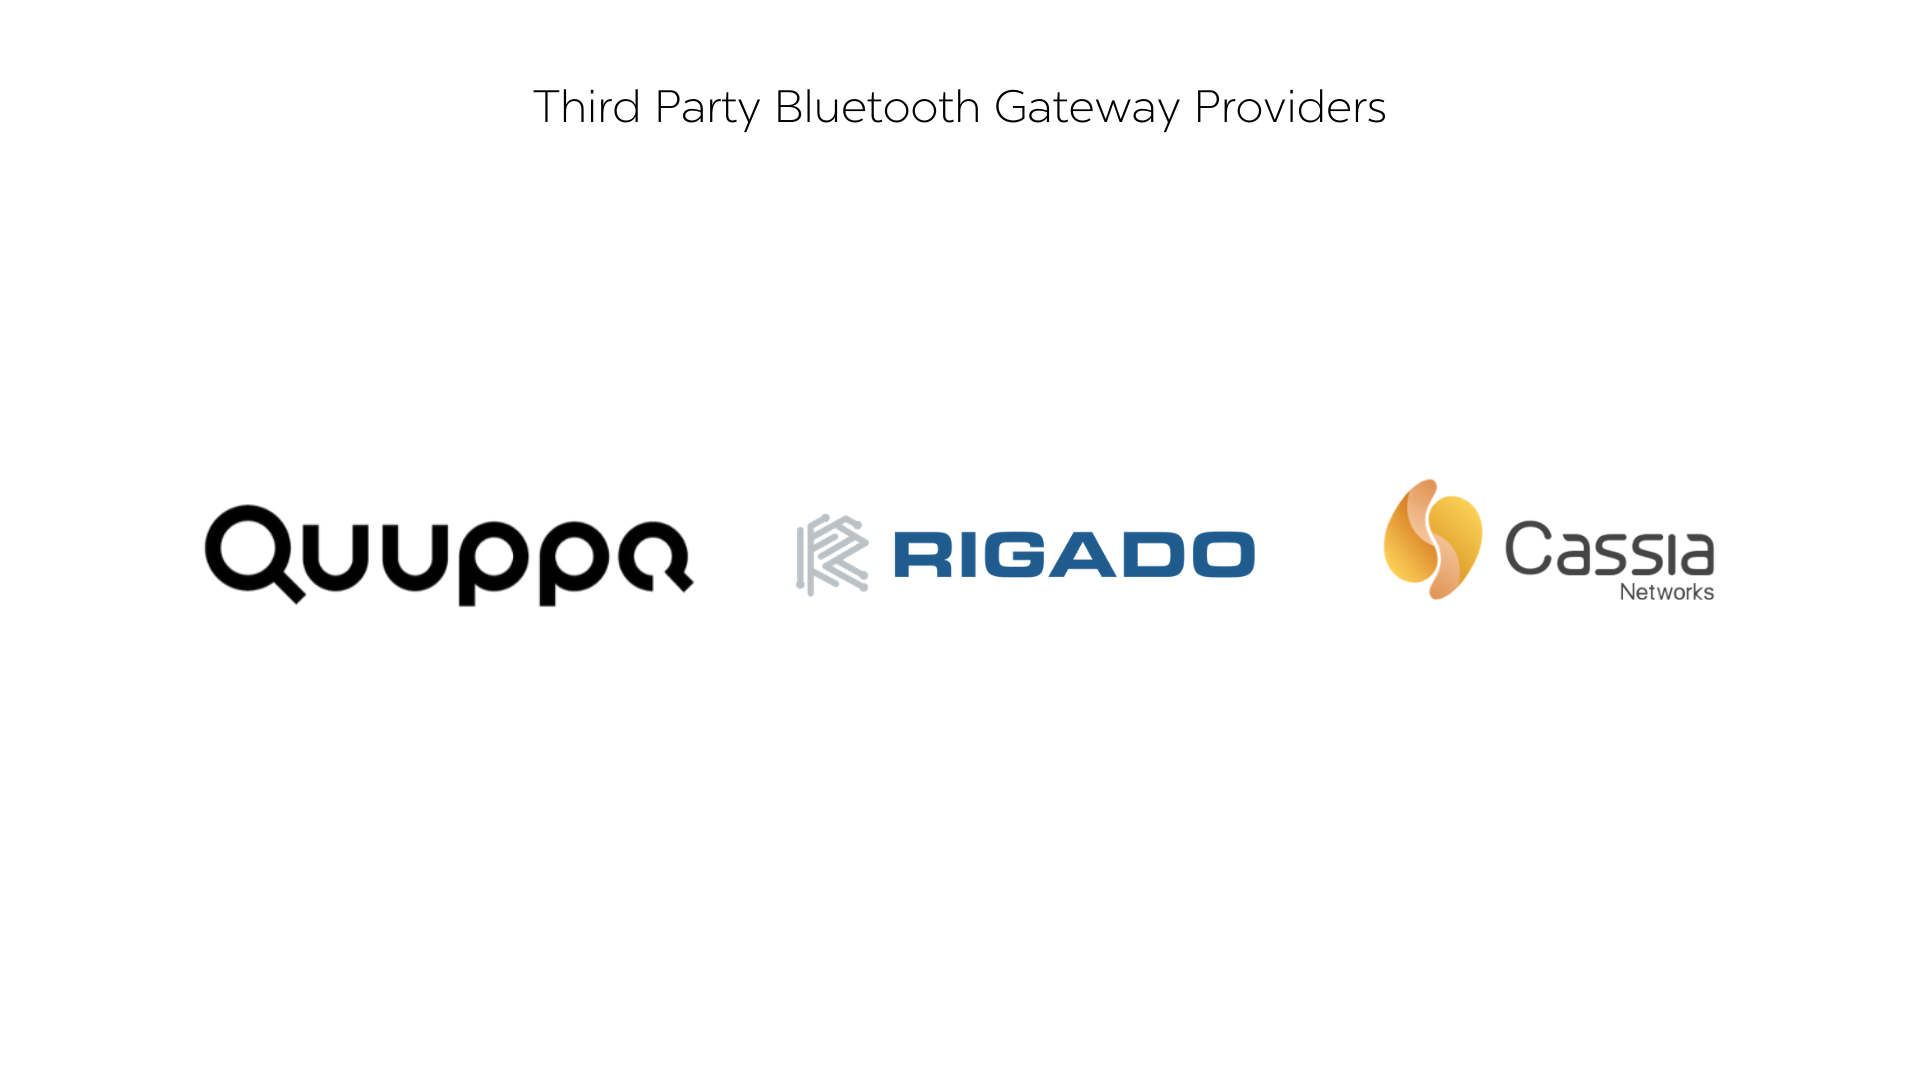 kontaktio-3rd-party-bluetooth-gateway-providers